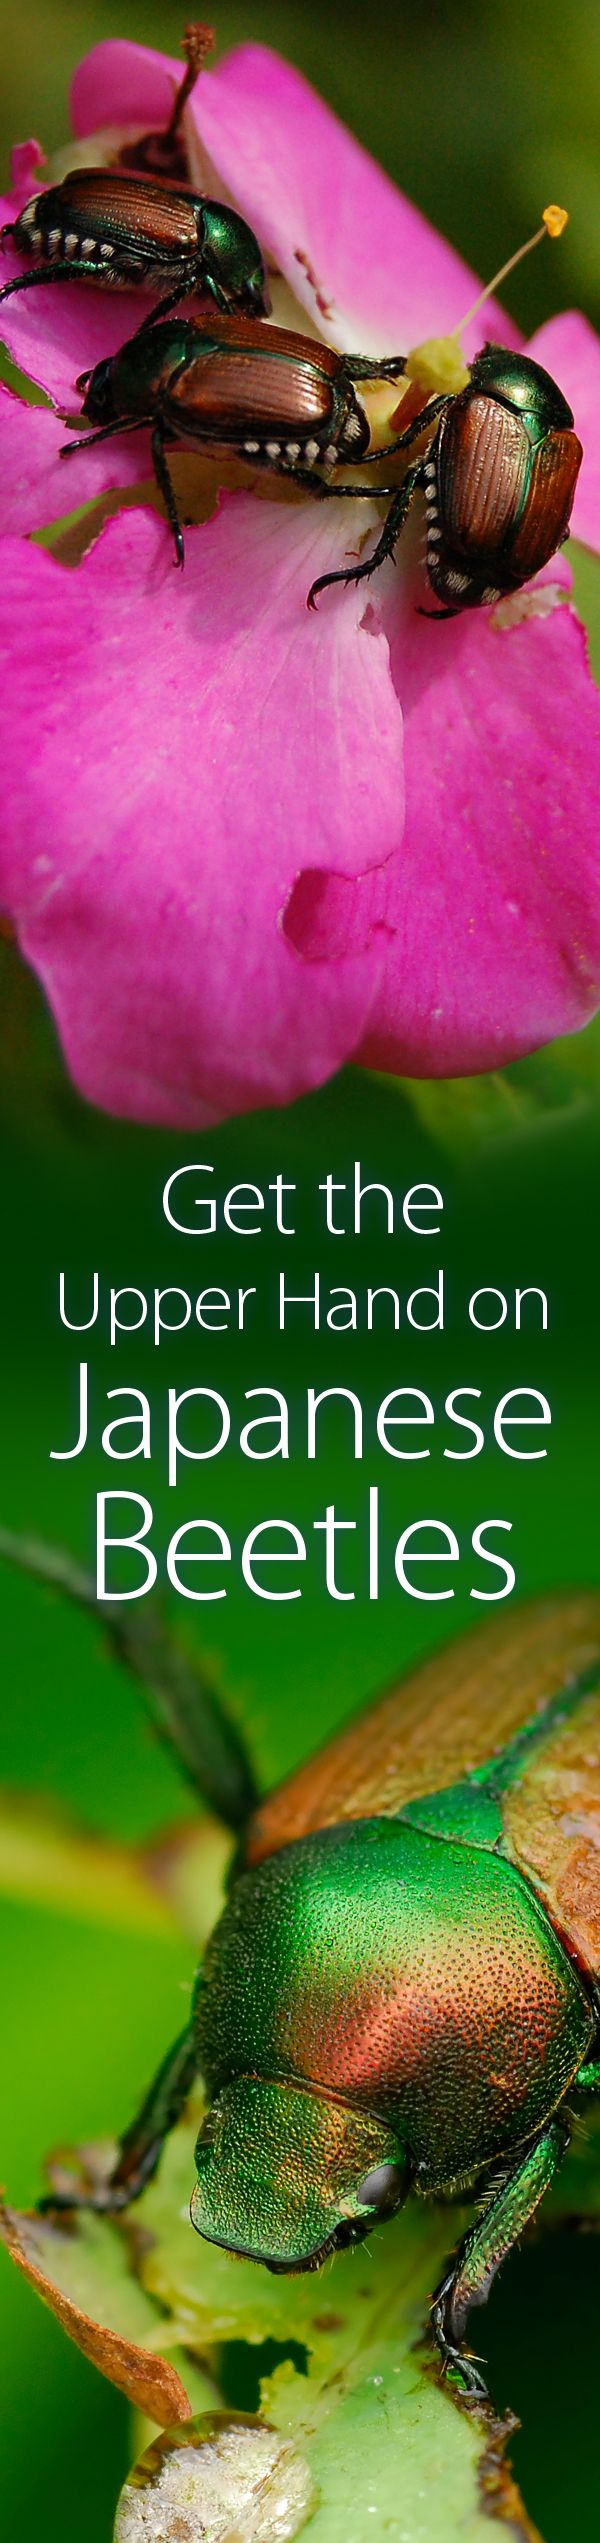 Few garden pests match the destructive power of Japanese beetles. This is a great article on how to keep Japanese Beetles from ruining your garden. #JapaneseBeetles